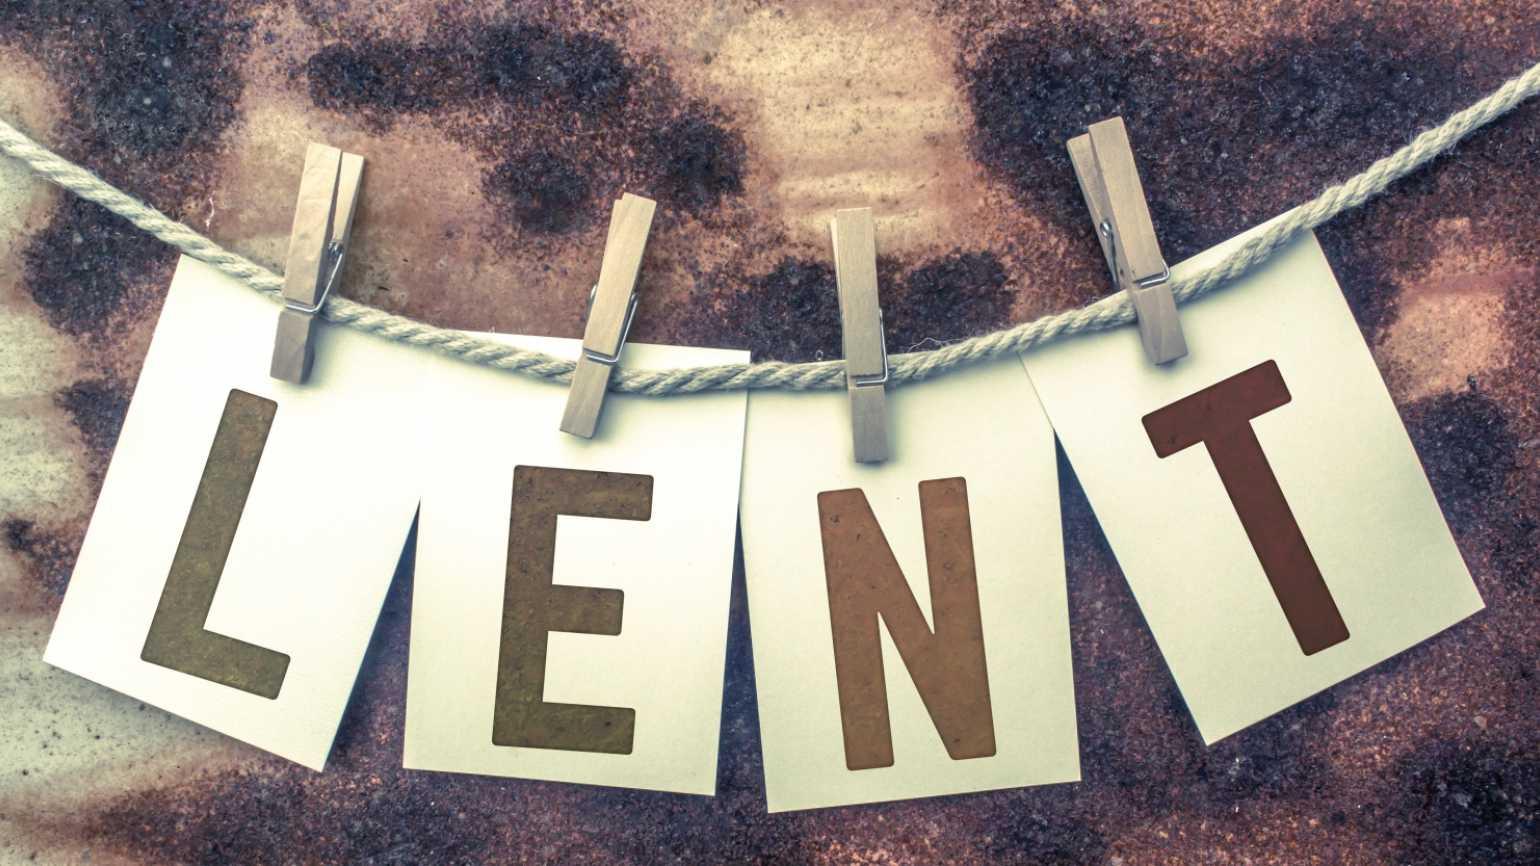 Lent: A Time to Recharge, Renew & Draw Closer to God